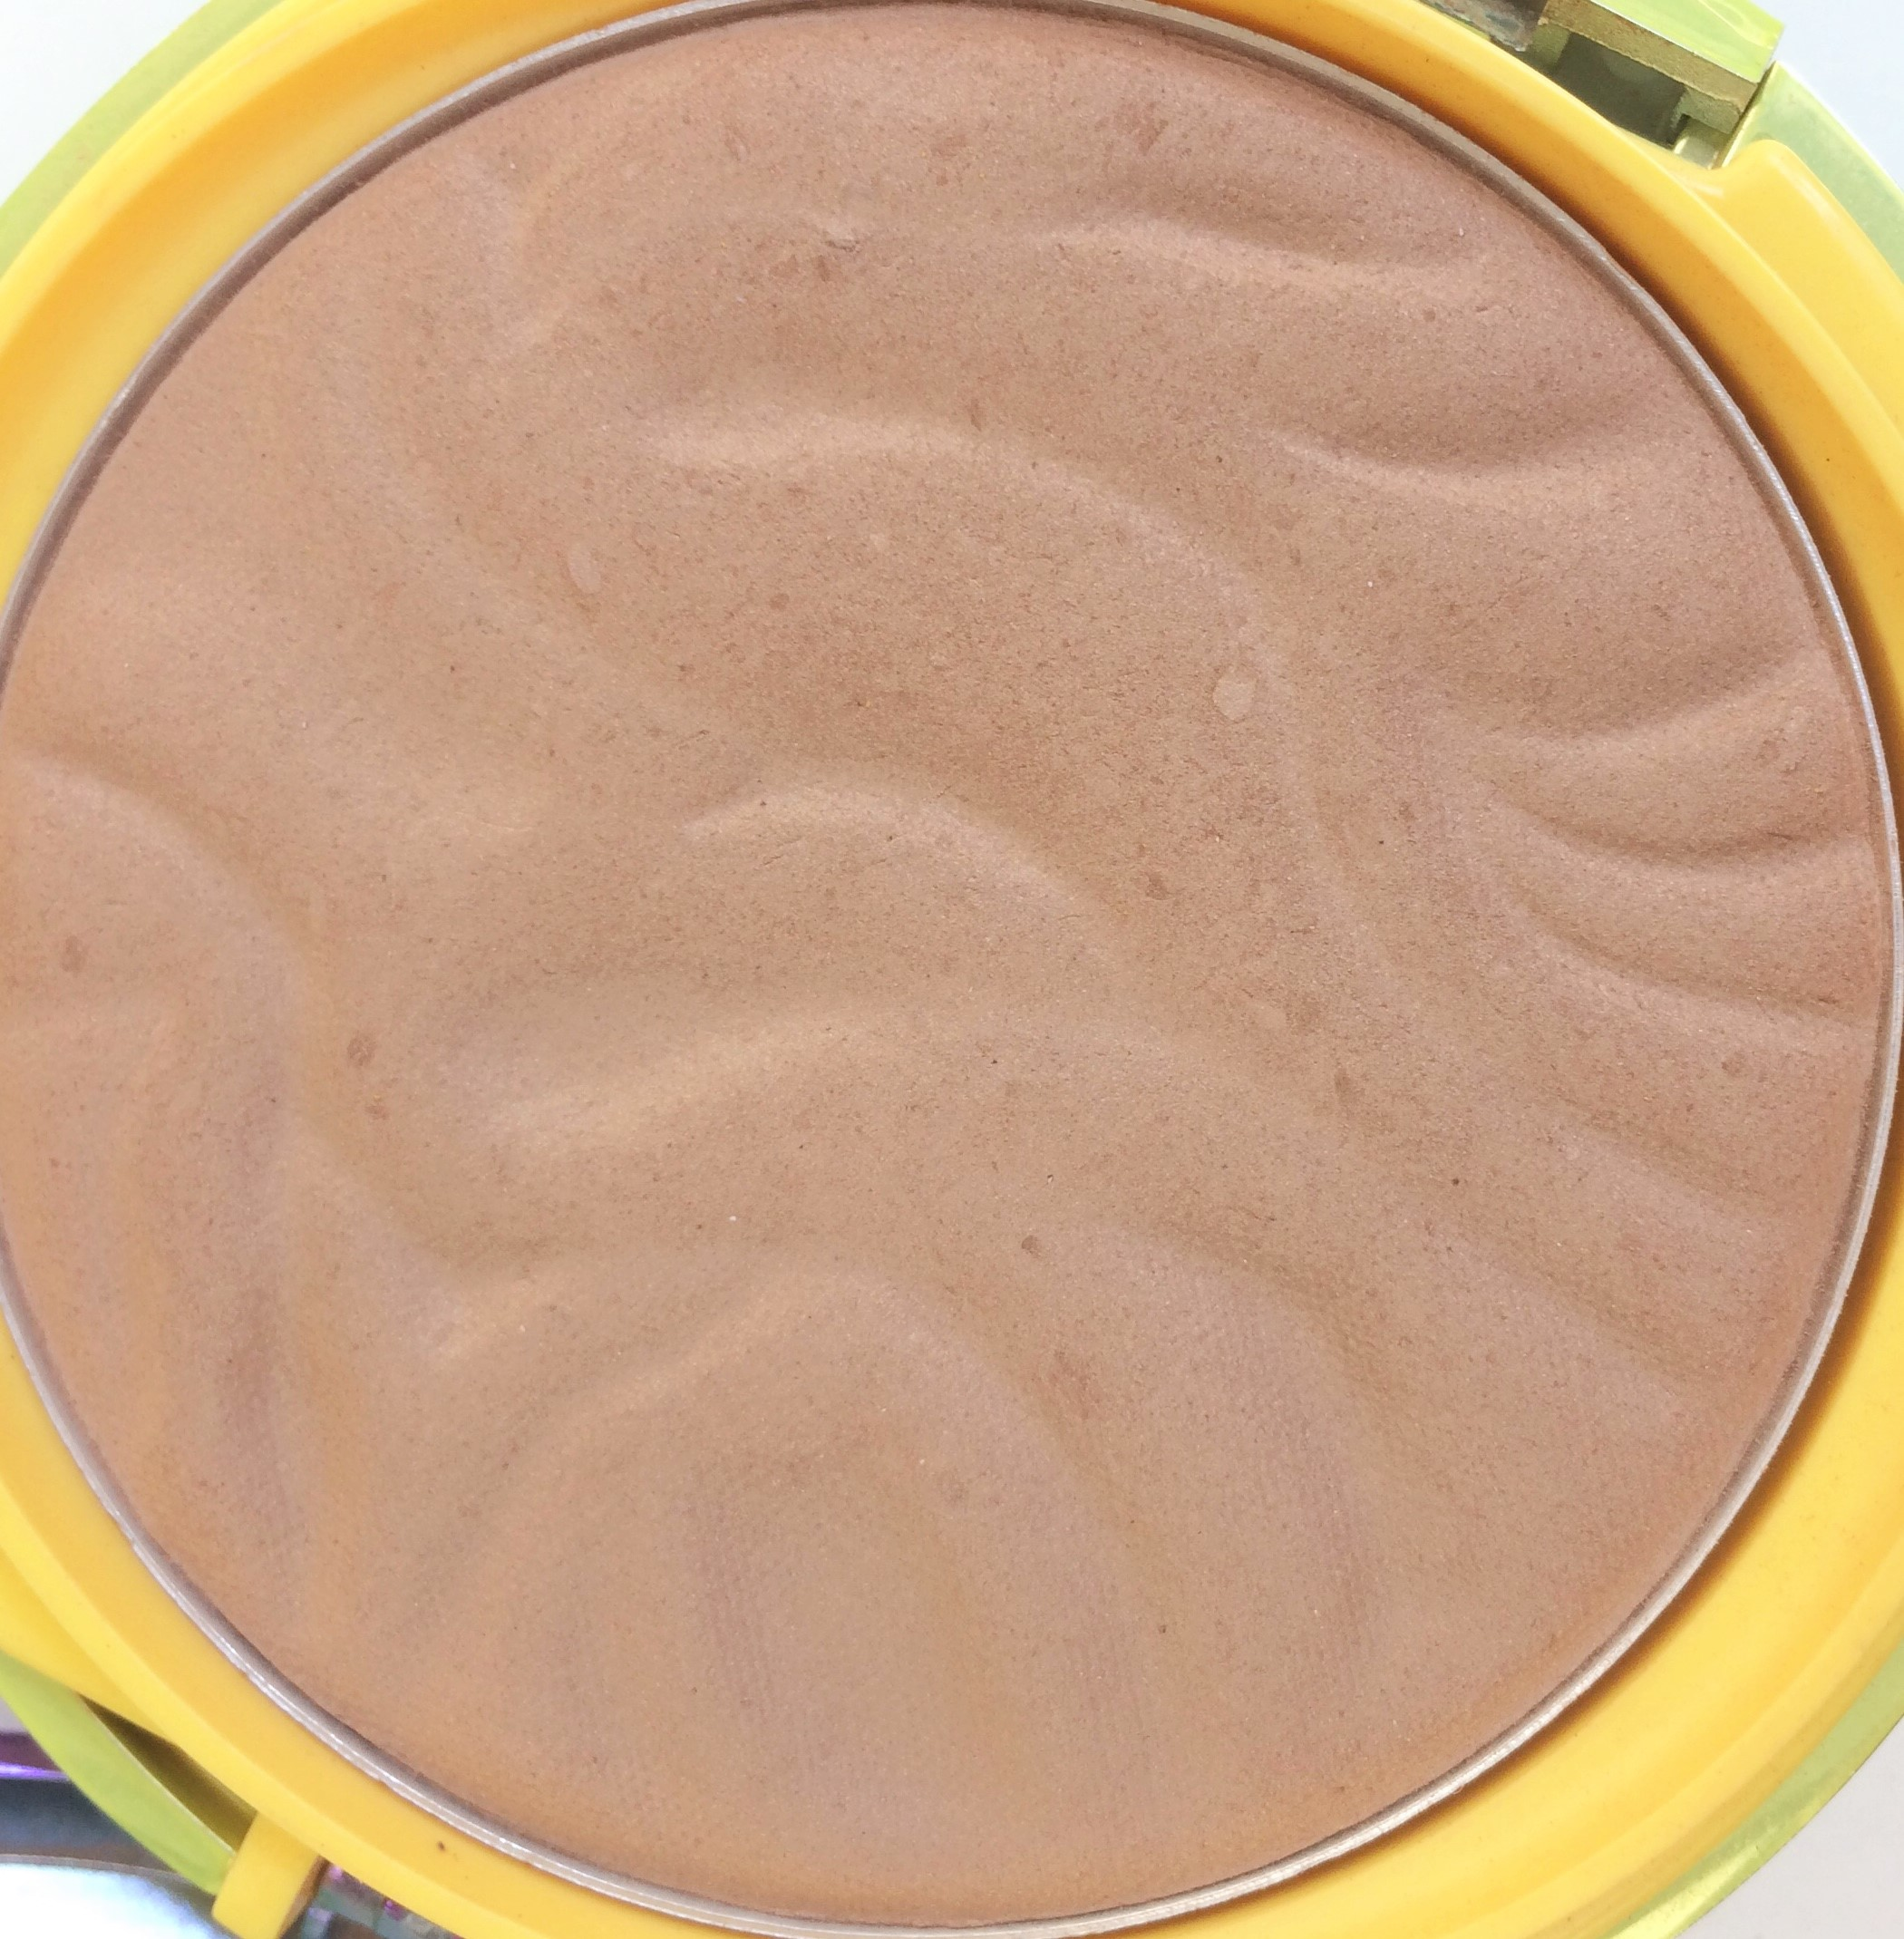 Physician's Formula Butter Bronzer Review  (2).jpg